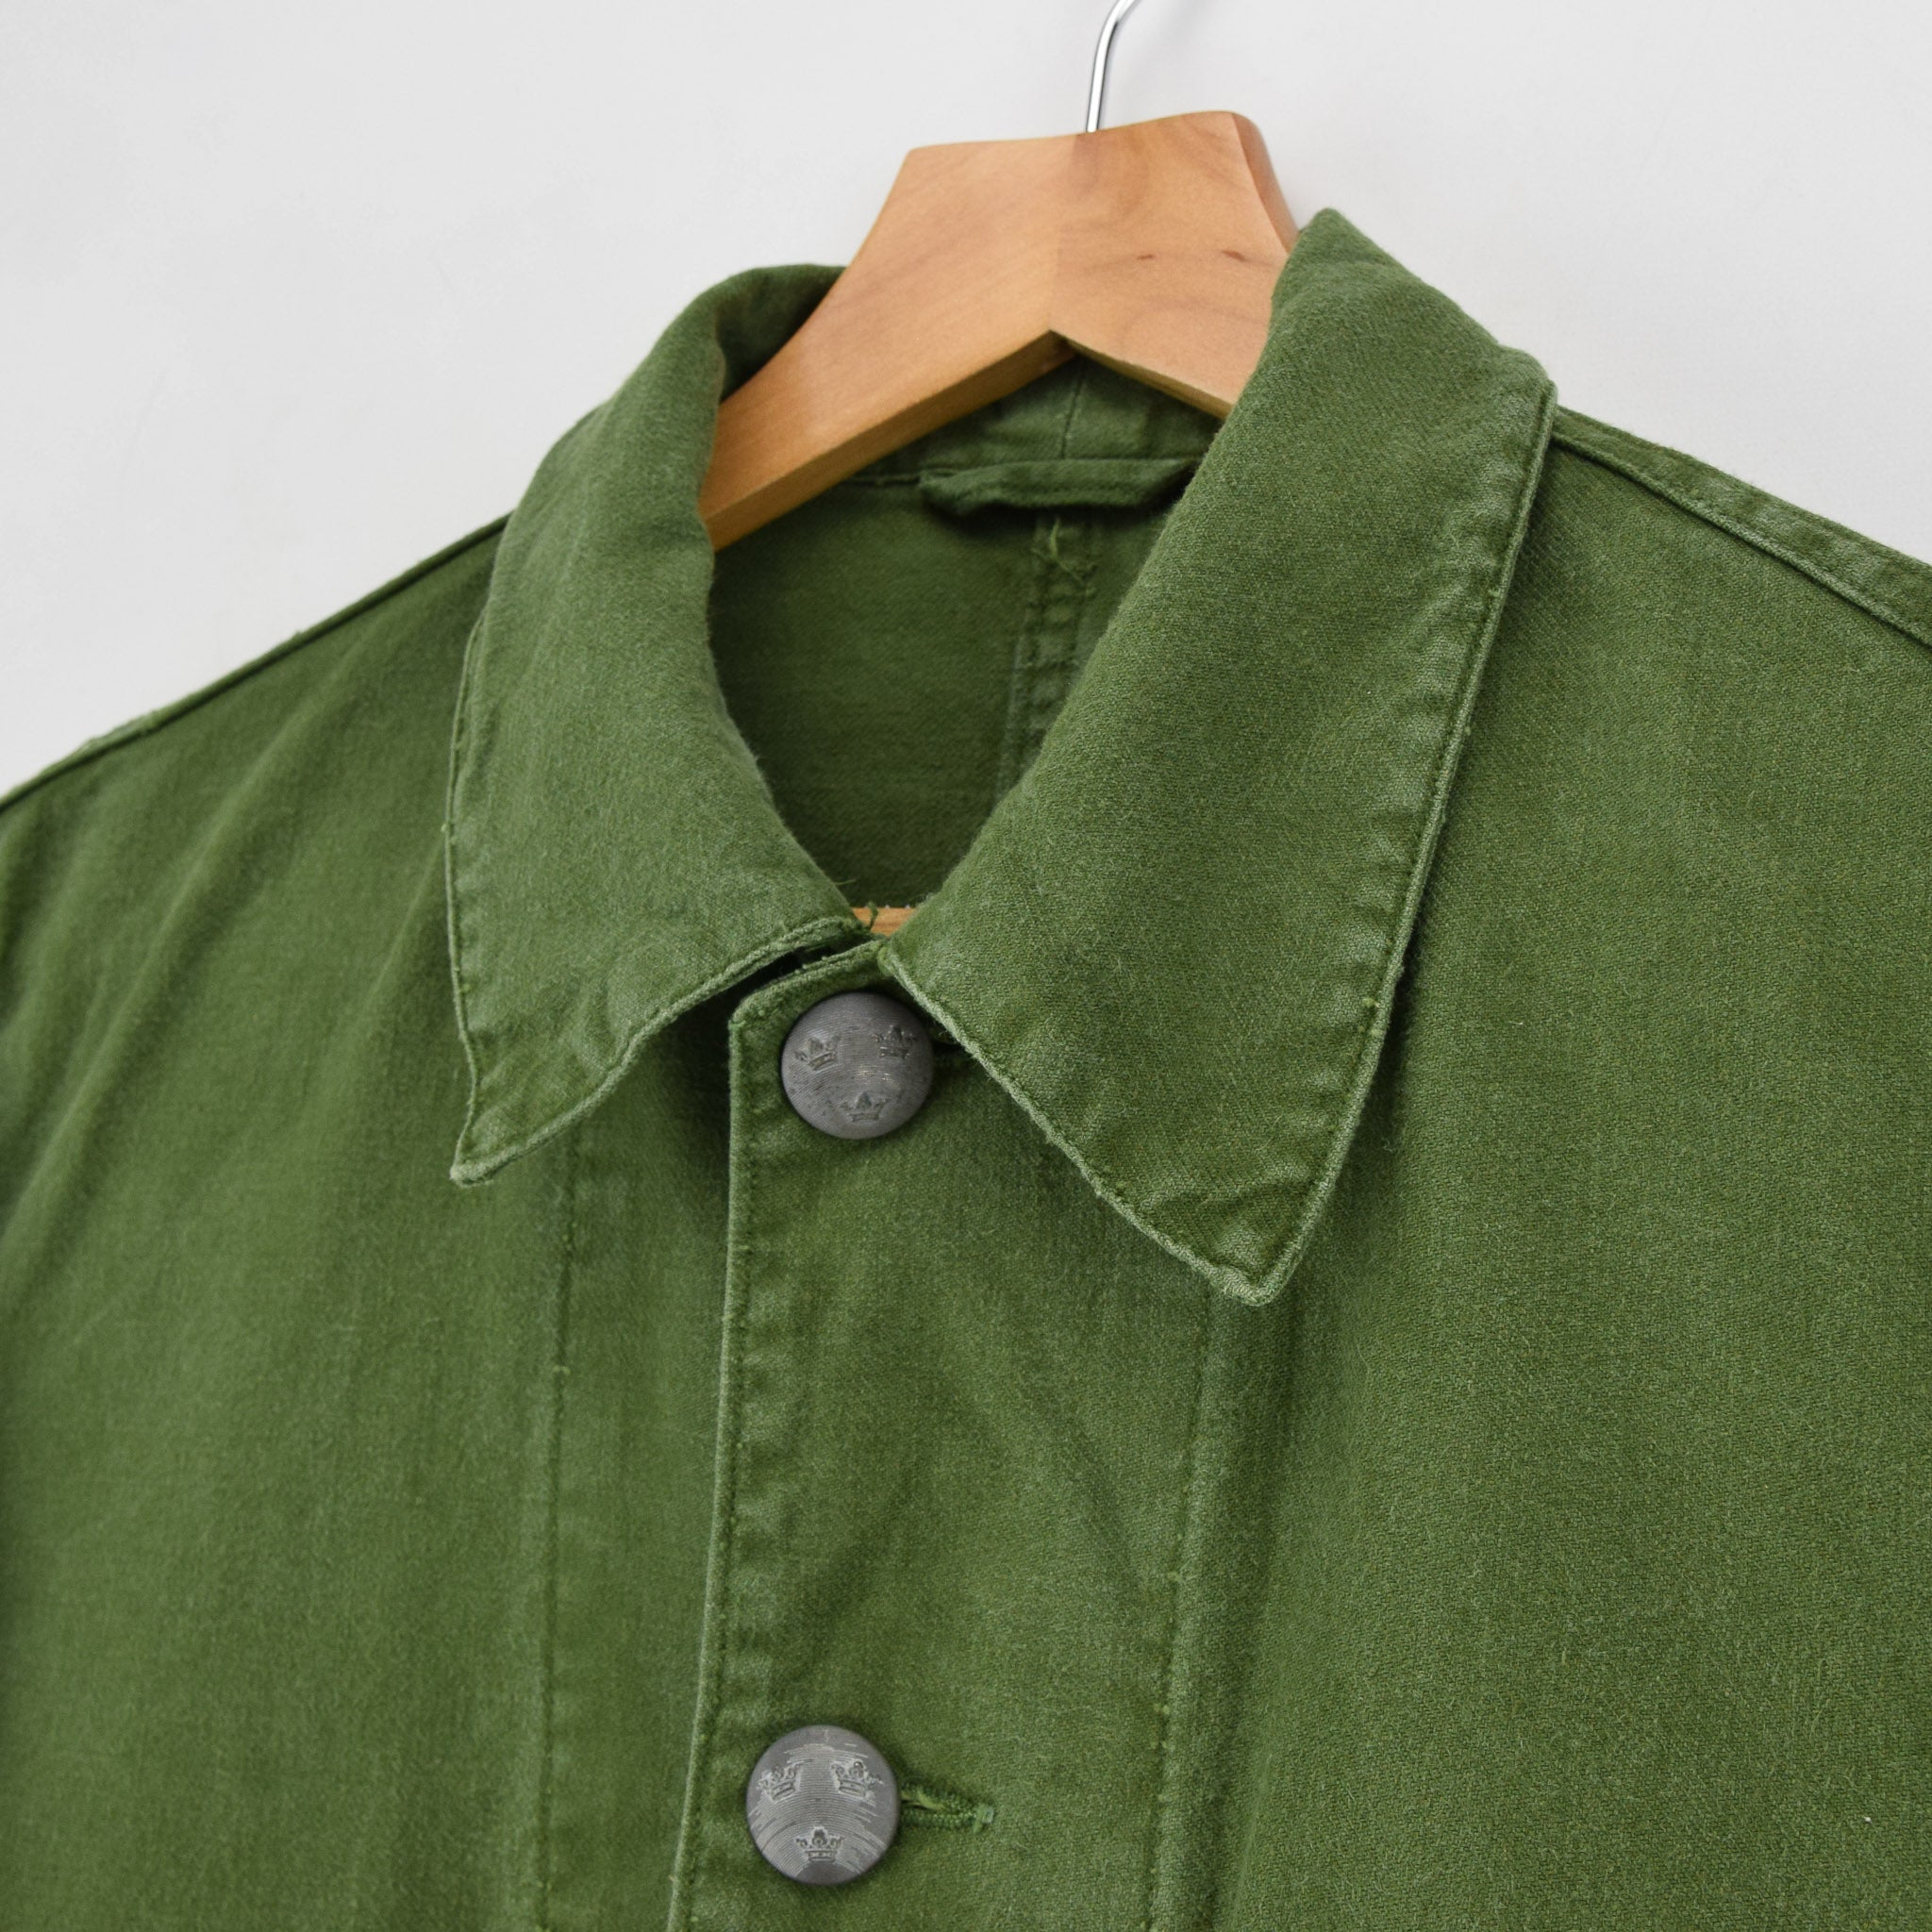 Vintage 60s Swedish Military Field Jacket Worker Style Distressed Green S / M collar